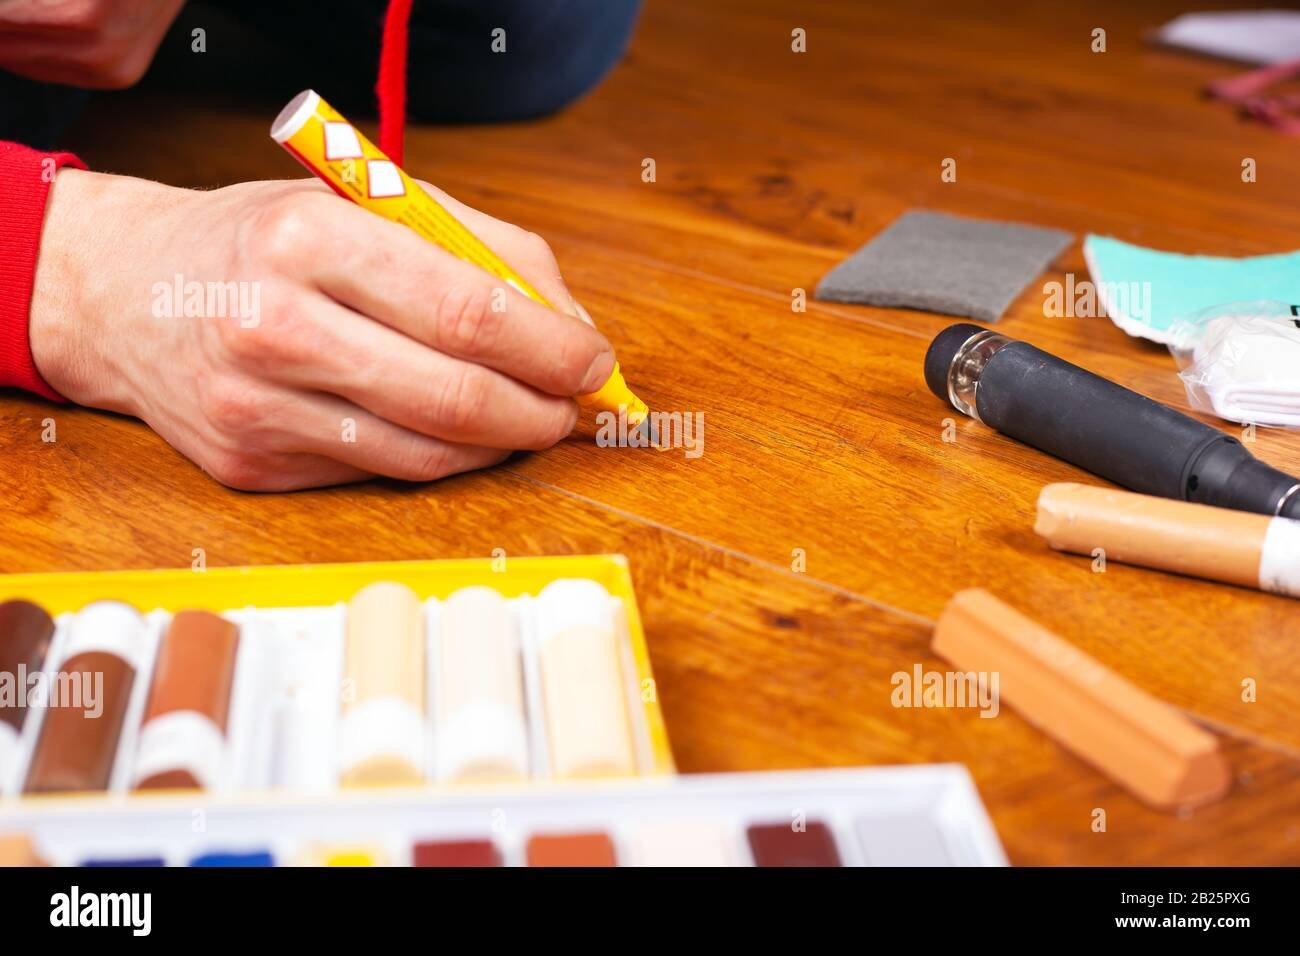 Repair Restoration Laminate Flooring Parquet And Wood Products Sealing Scratches And Chips Master Processes The Surface With A Special Pencil To Remo Stock Photo Alamy